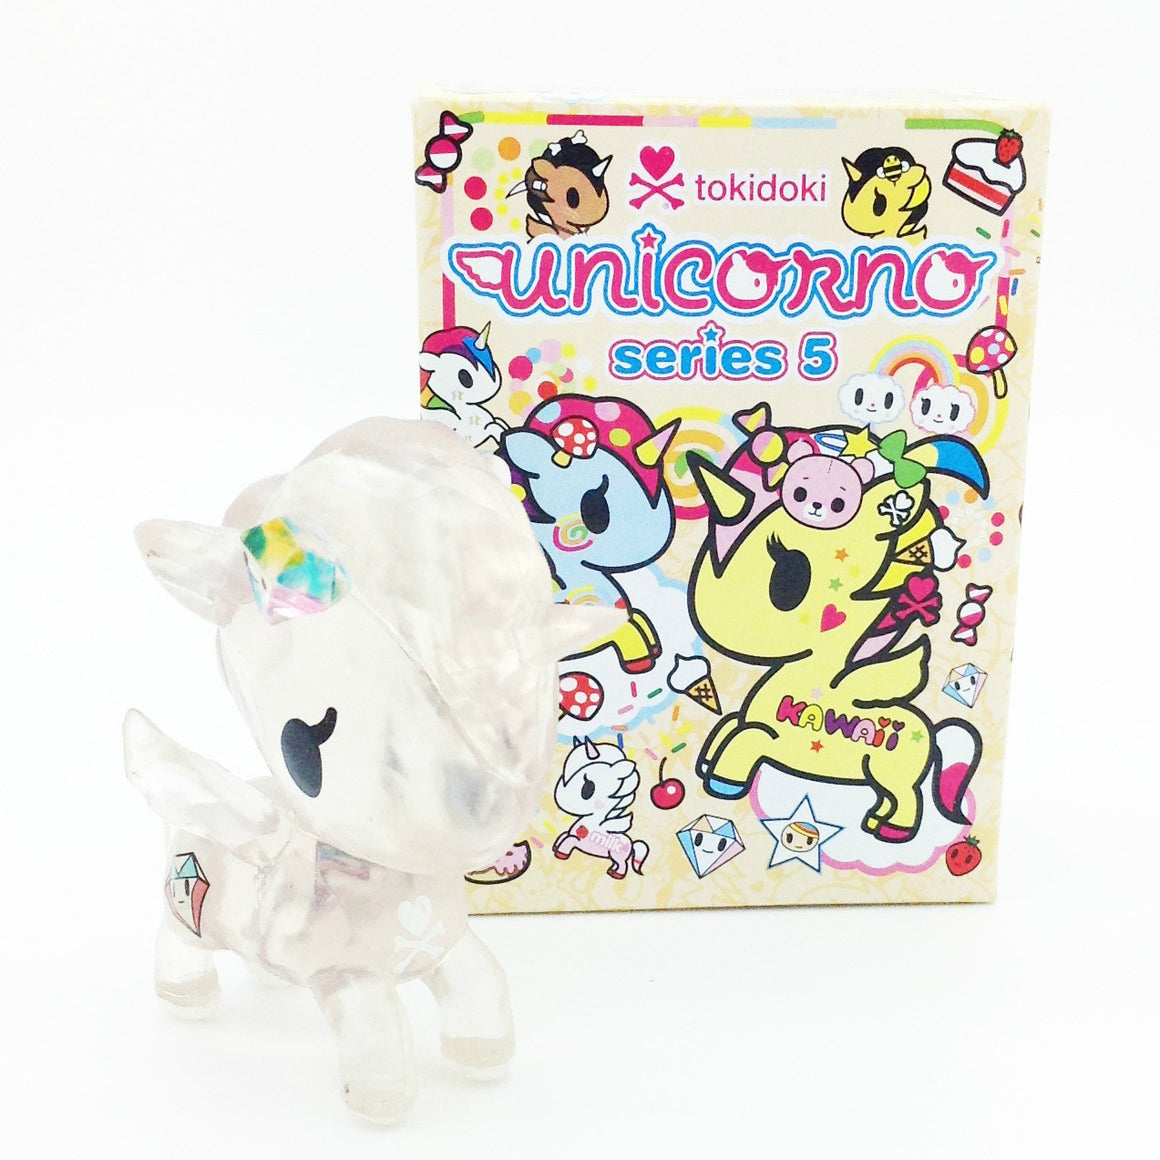 Unicorno Series 5 by Tokidoki - Diamante (Chase)